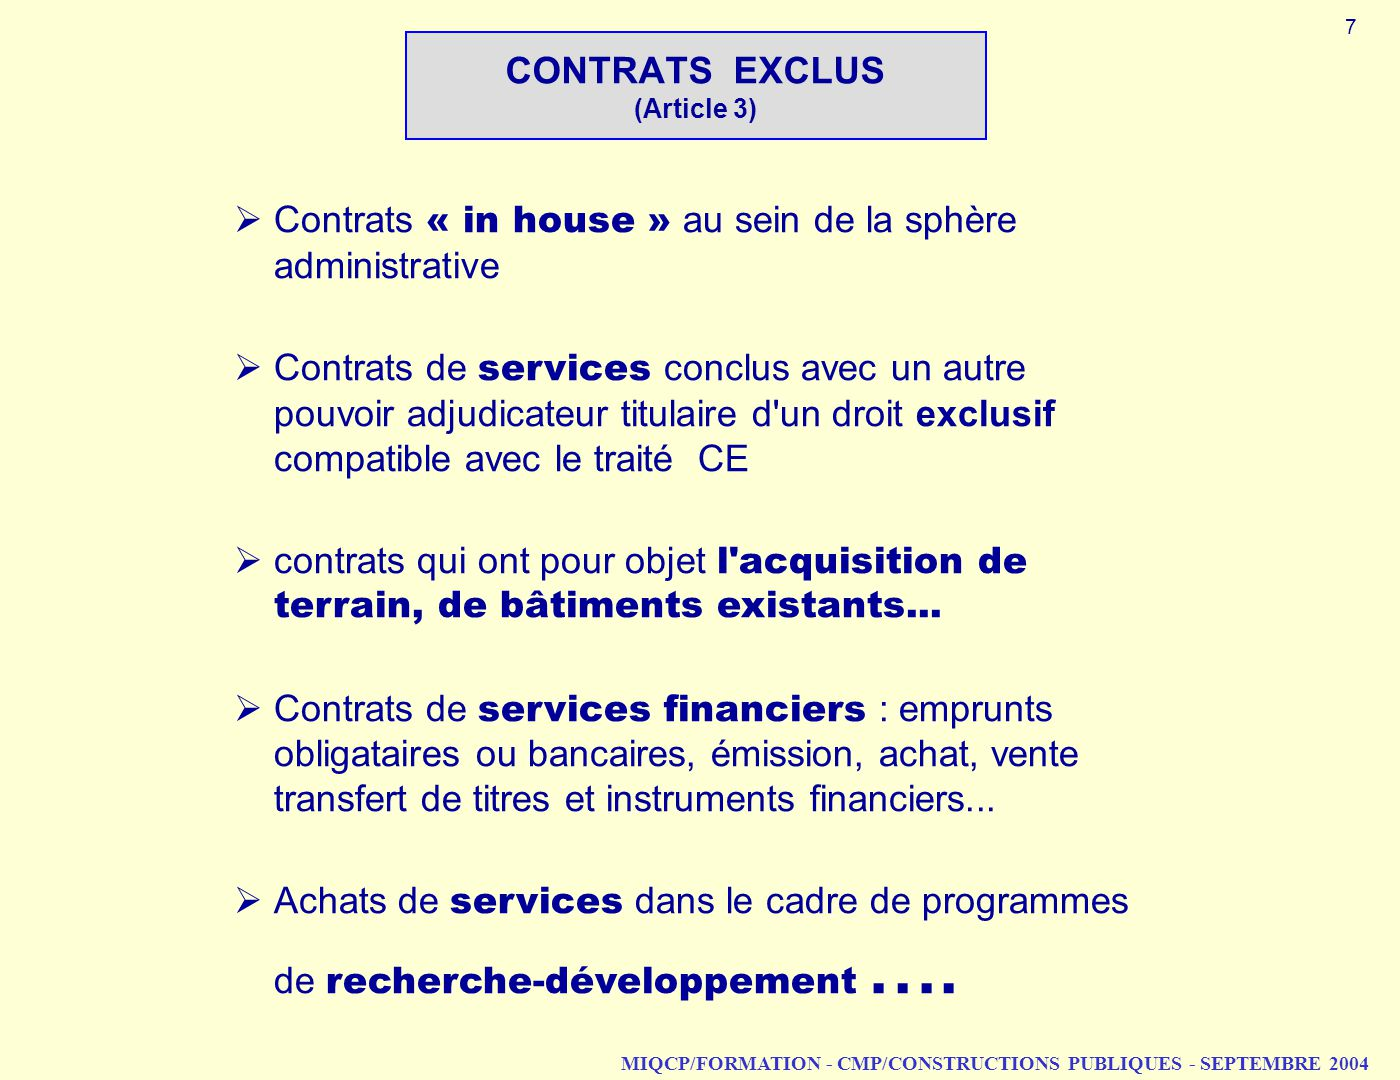 CONTRATS EXCLUS (Article 3)